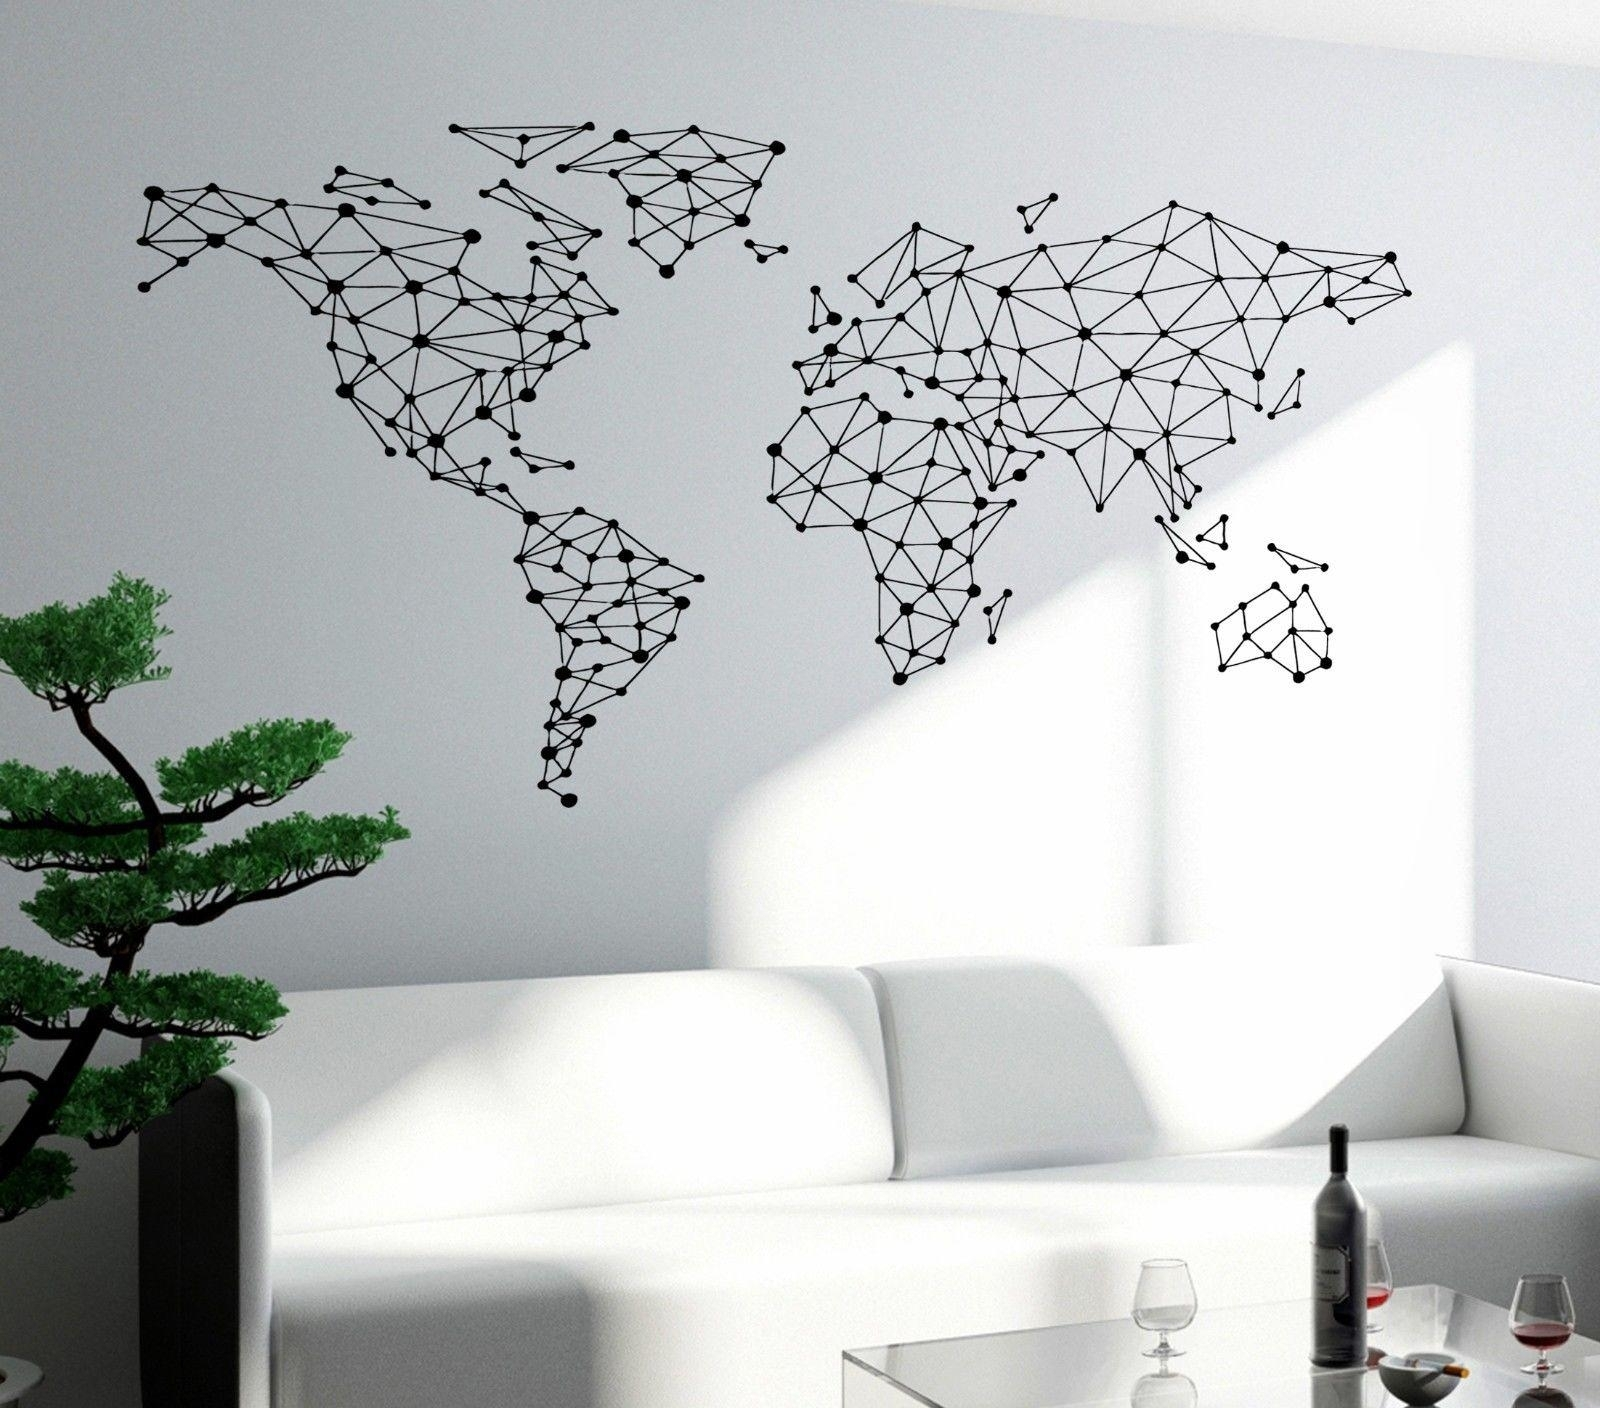 Wondrous Inspration Amazon Wall Art Best Of World Map Dahlia S Home Throughout Most Current Diy World Map Wall Art (View 18 of 20)